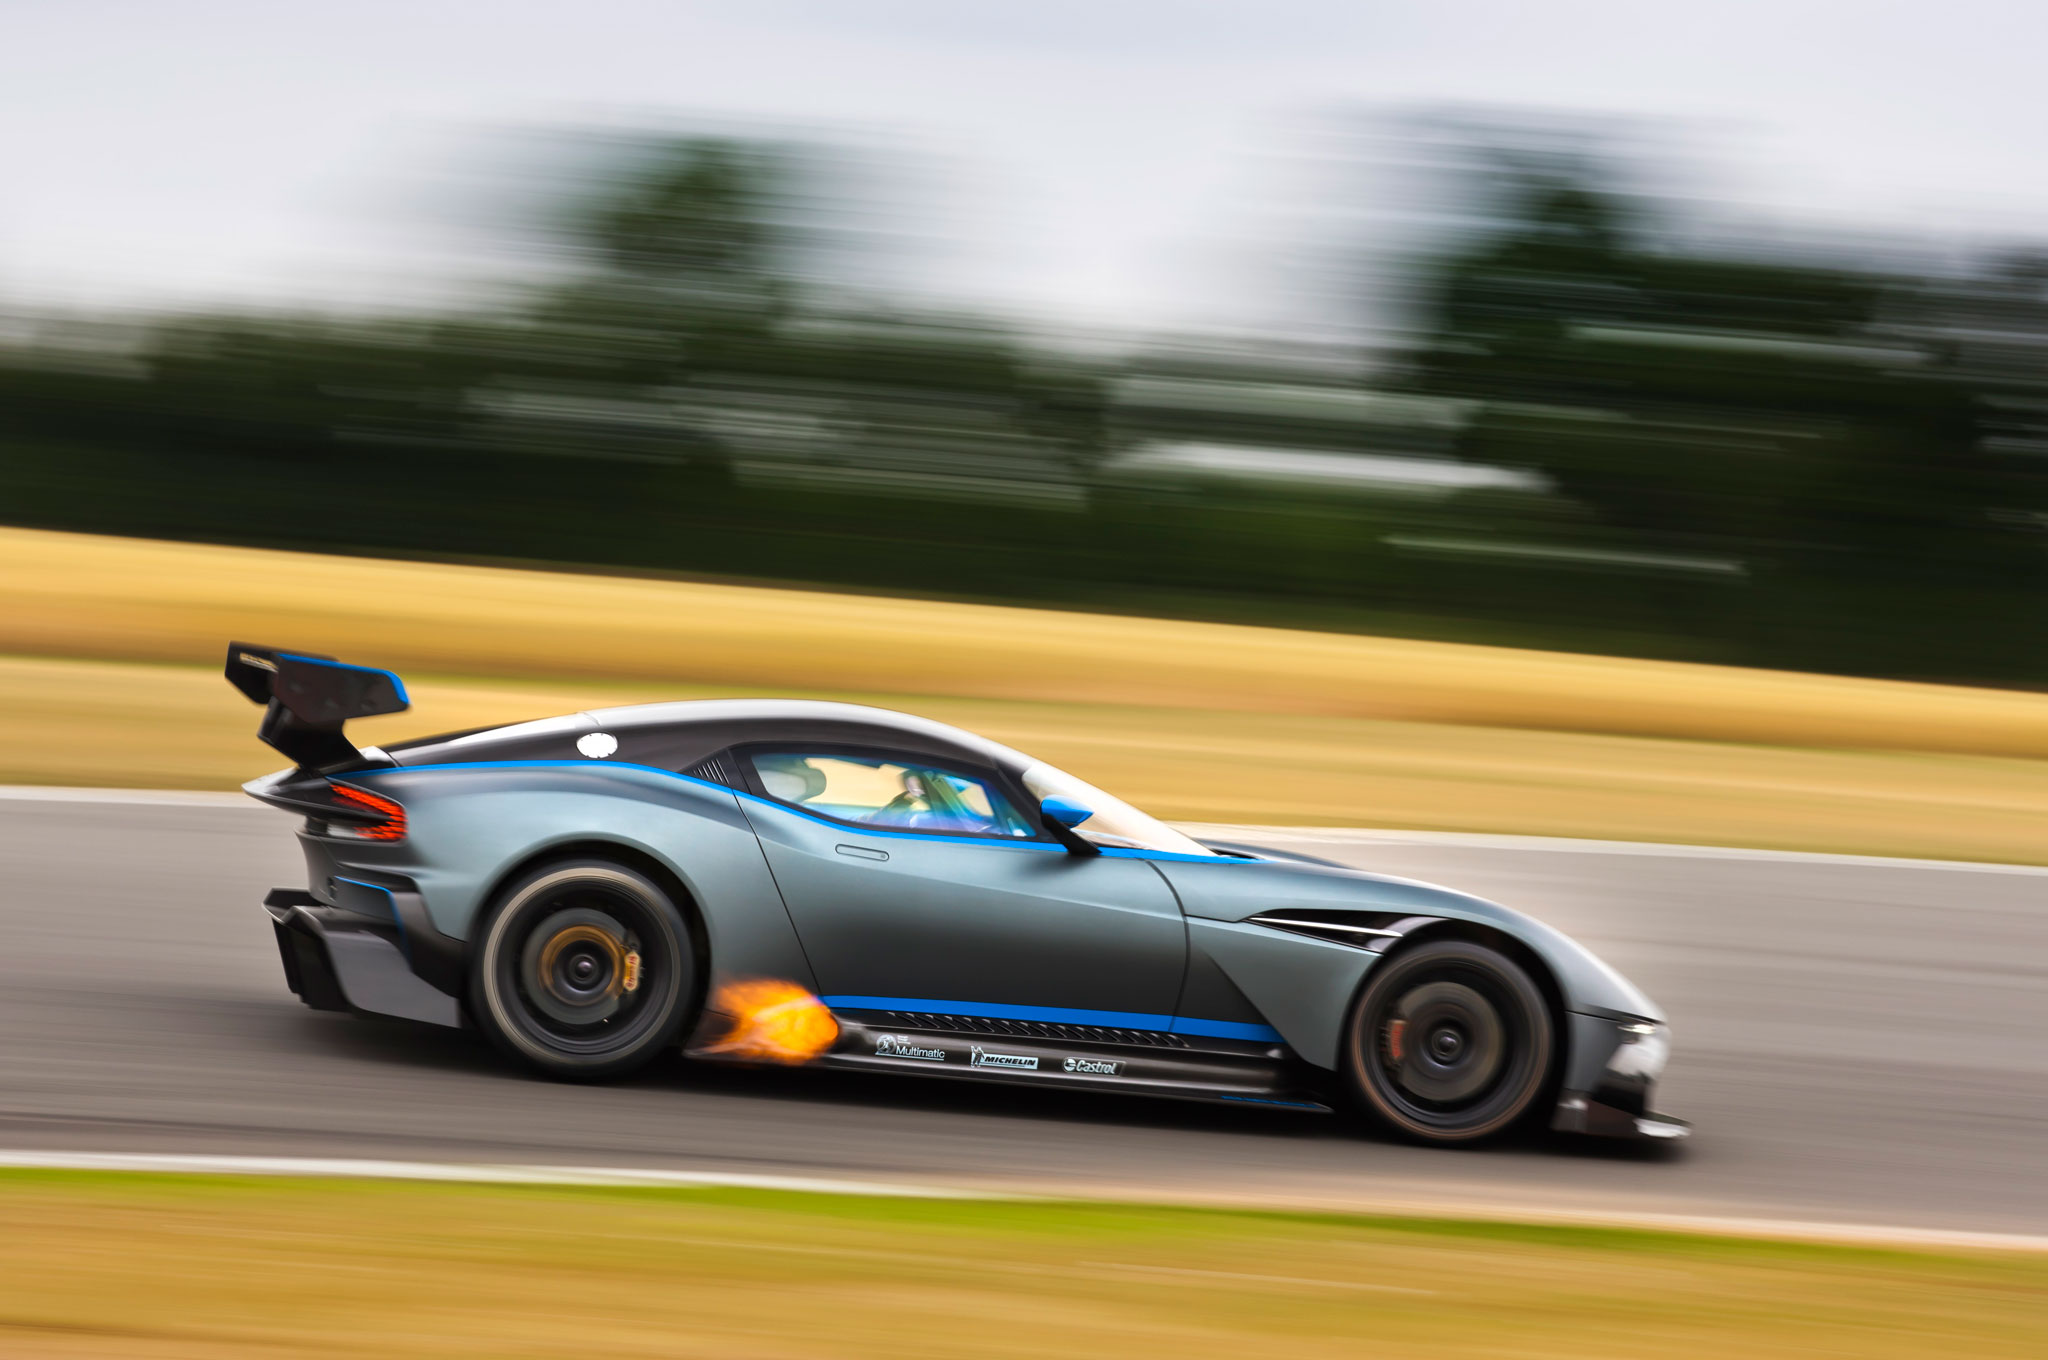 Engineering Firm To Make Road Legal Versions Of Aston Martin Vulcan